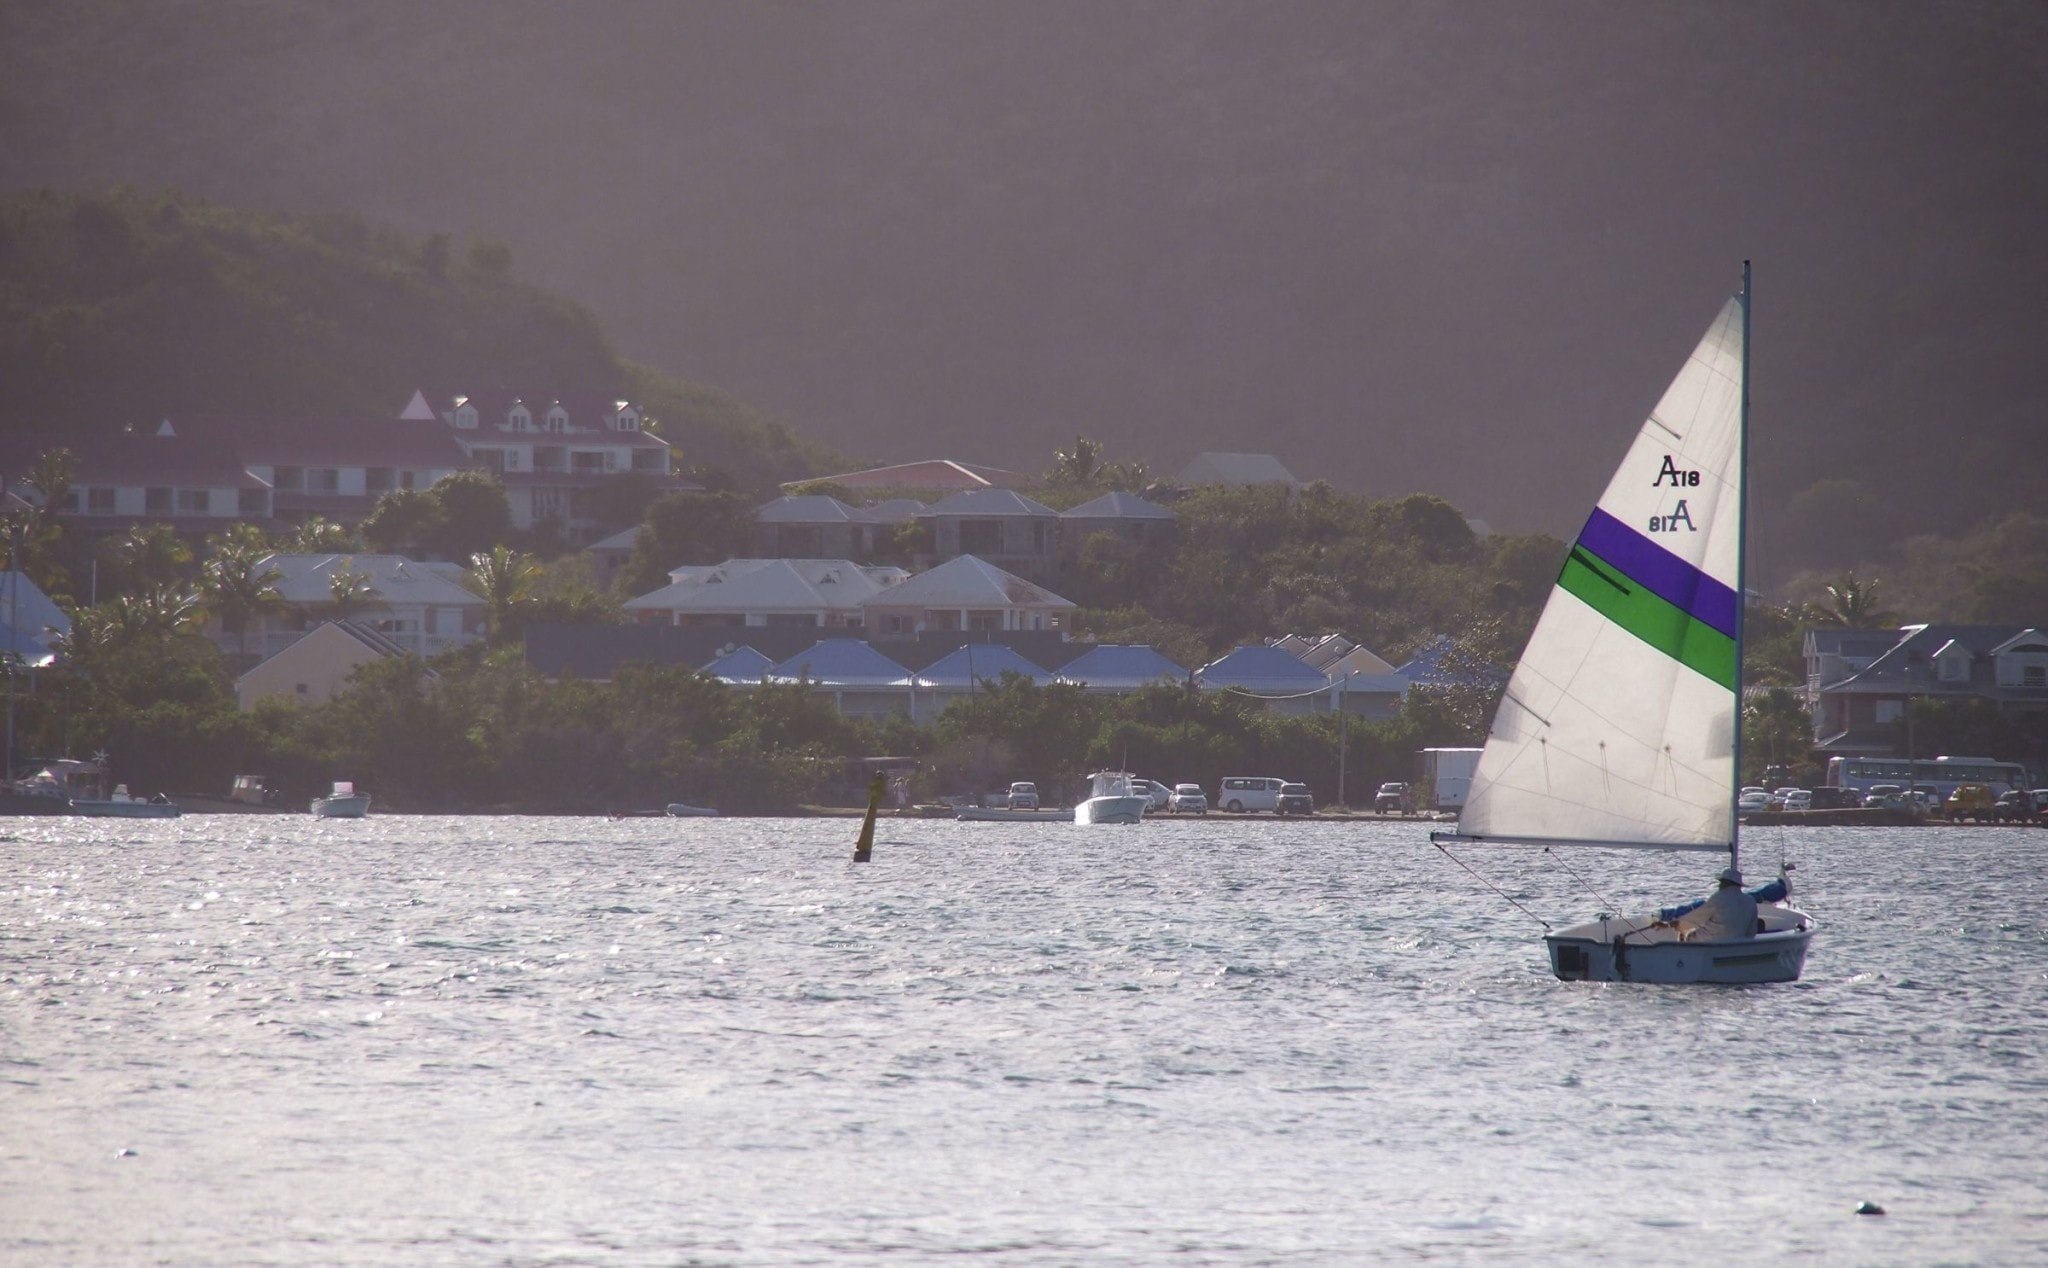 Out For An Afternoon Sail in Baie du Cul-de-Sac, St. Martin